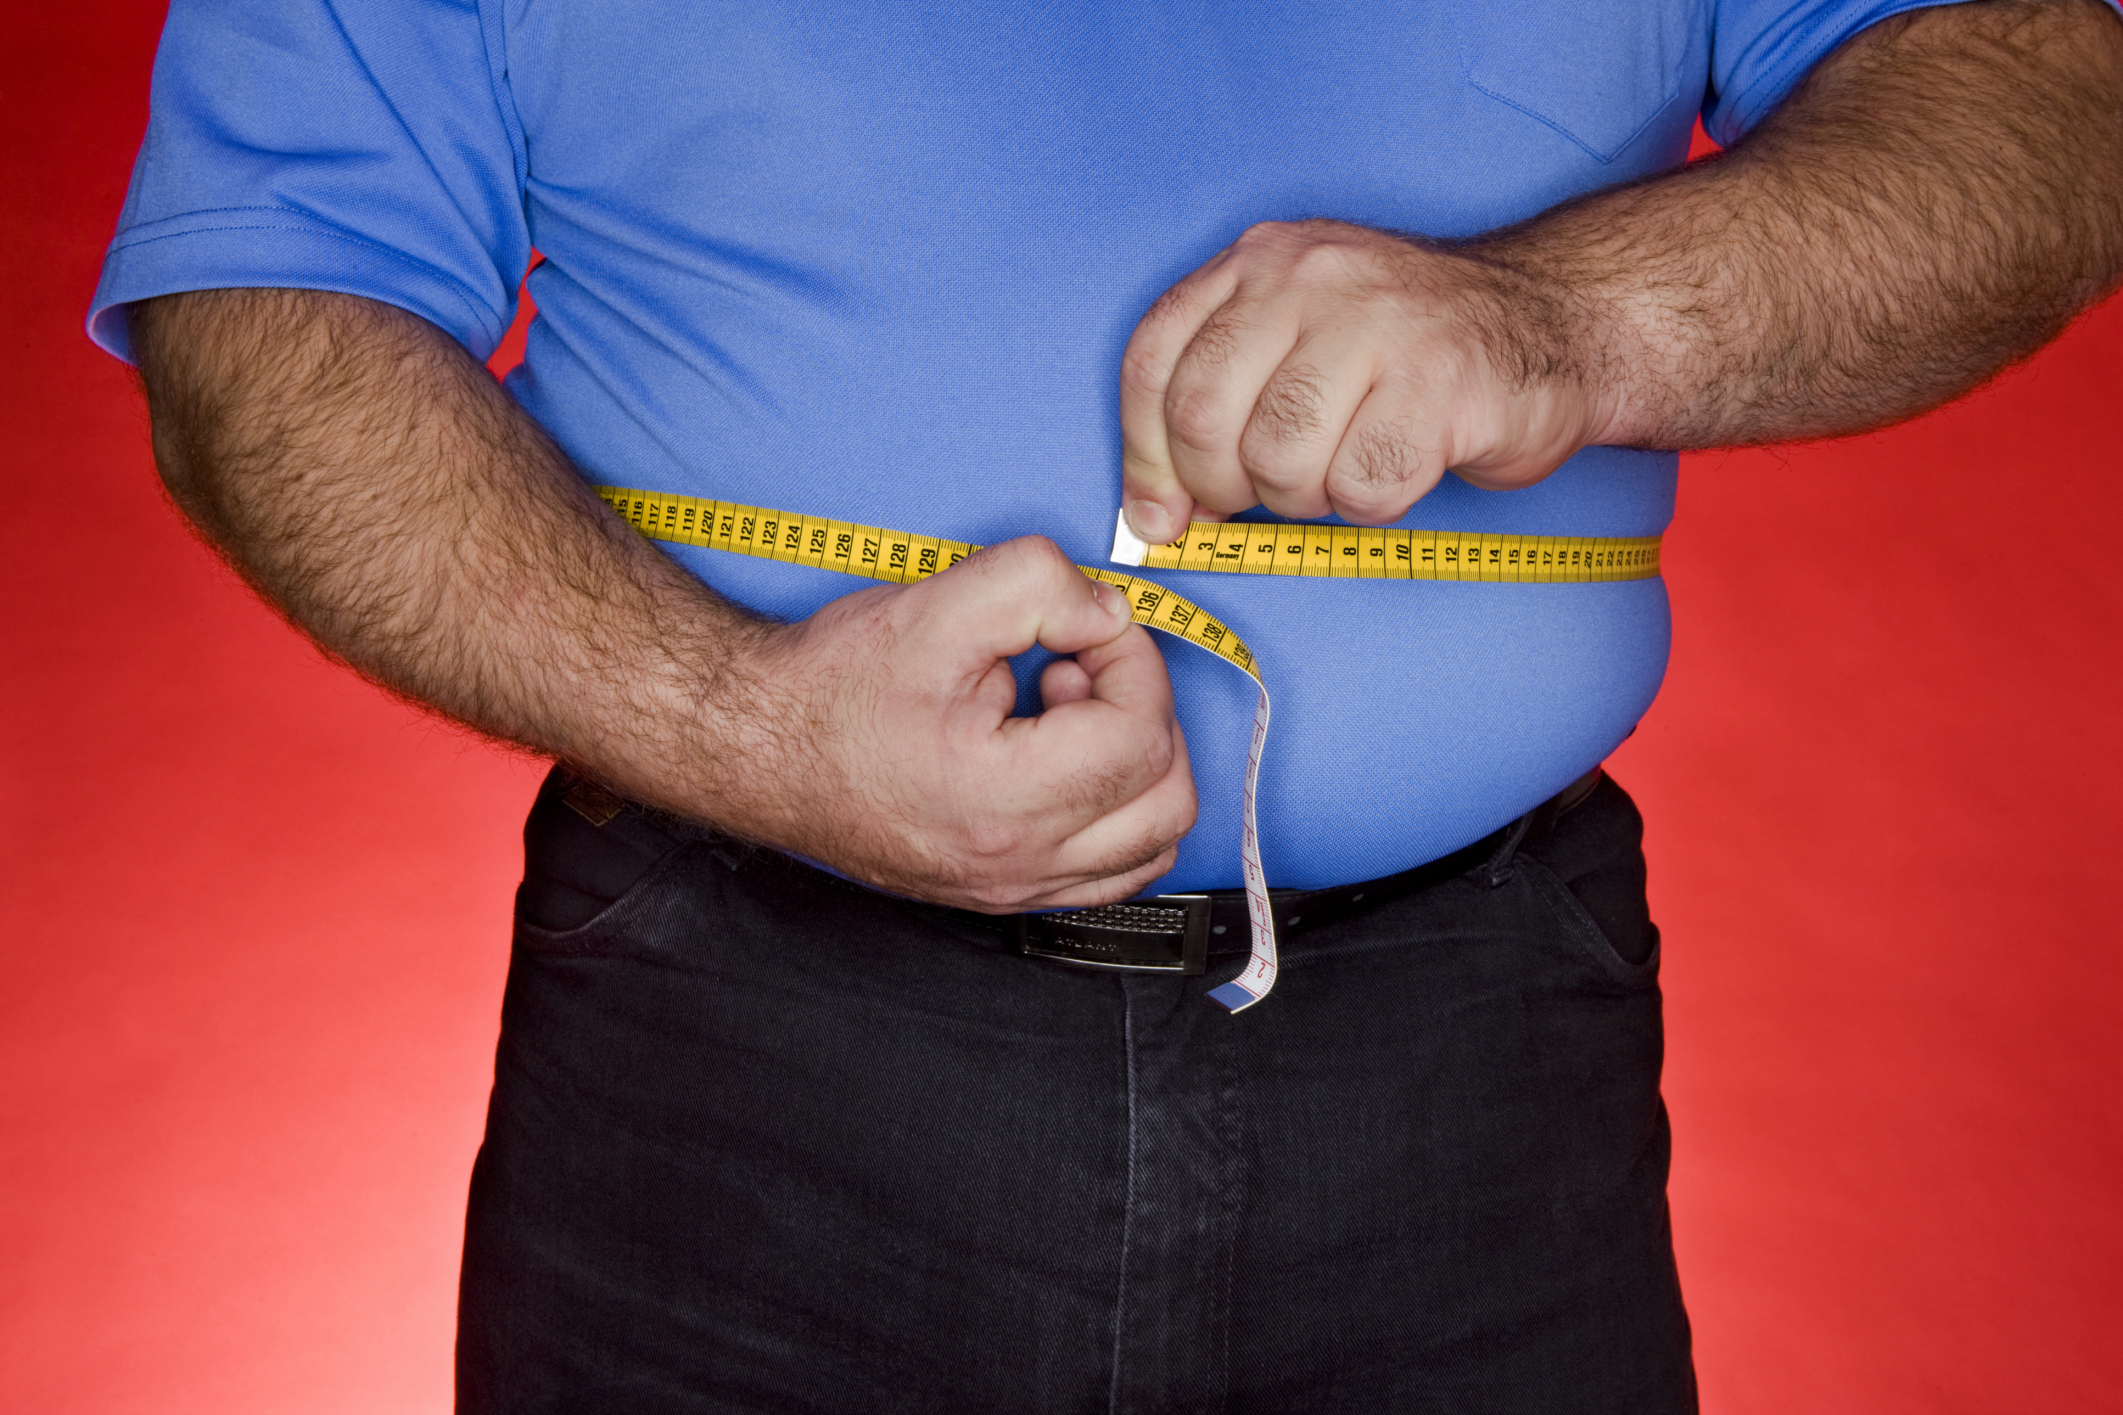 The Standard Waist Hip Measurements Based On Height Weight